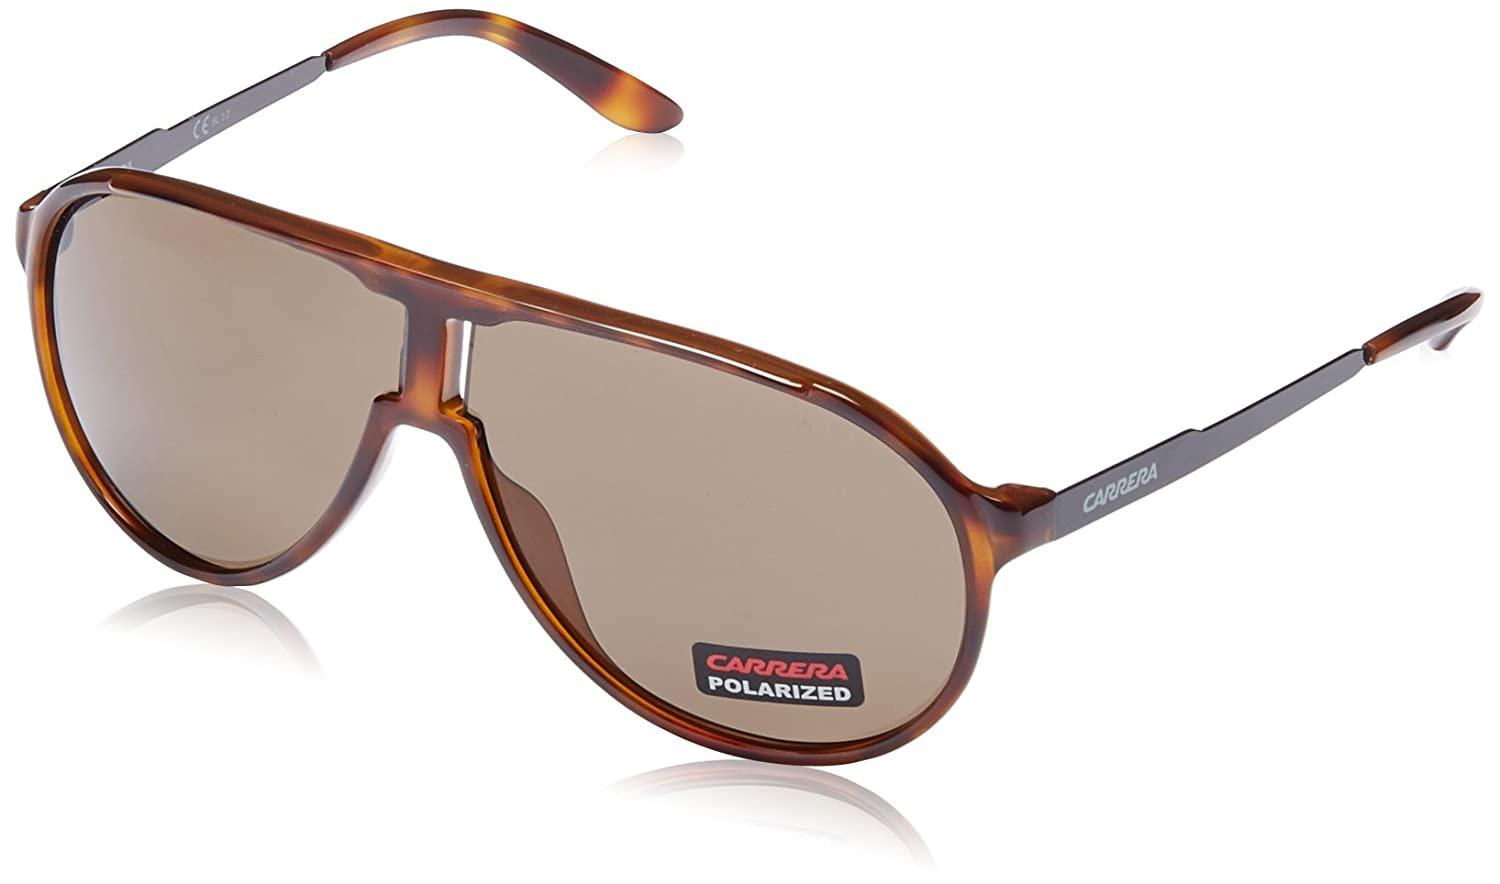 Unisex New Champion SP 8F8 Sunglasses, Dkhvn Shyblk/Bronze Pz, 62 Carrera